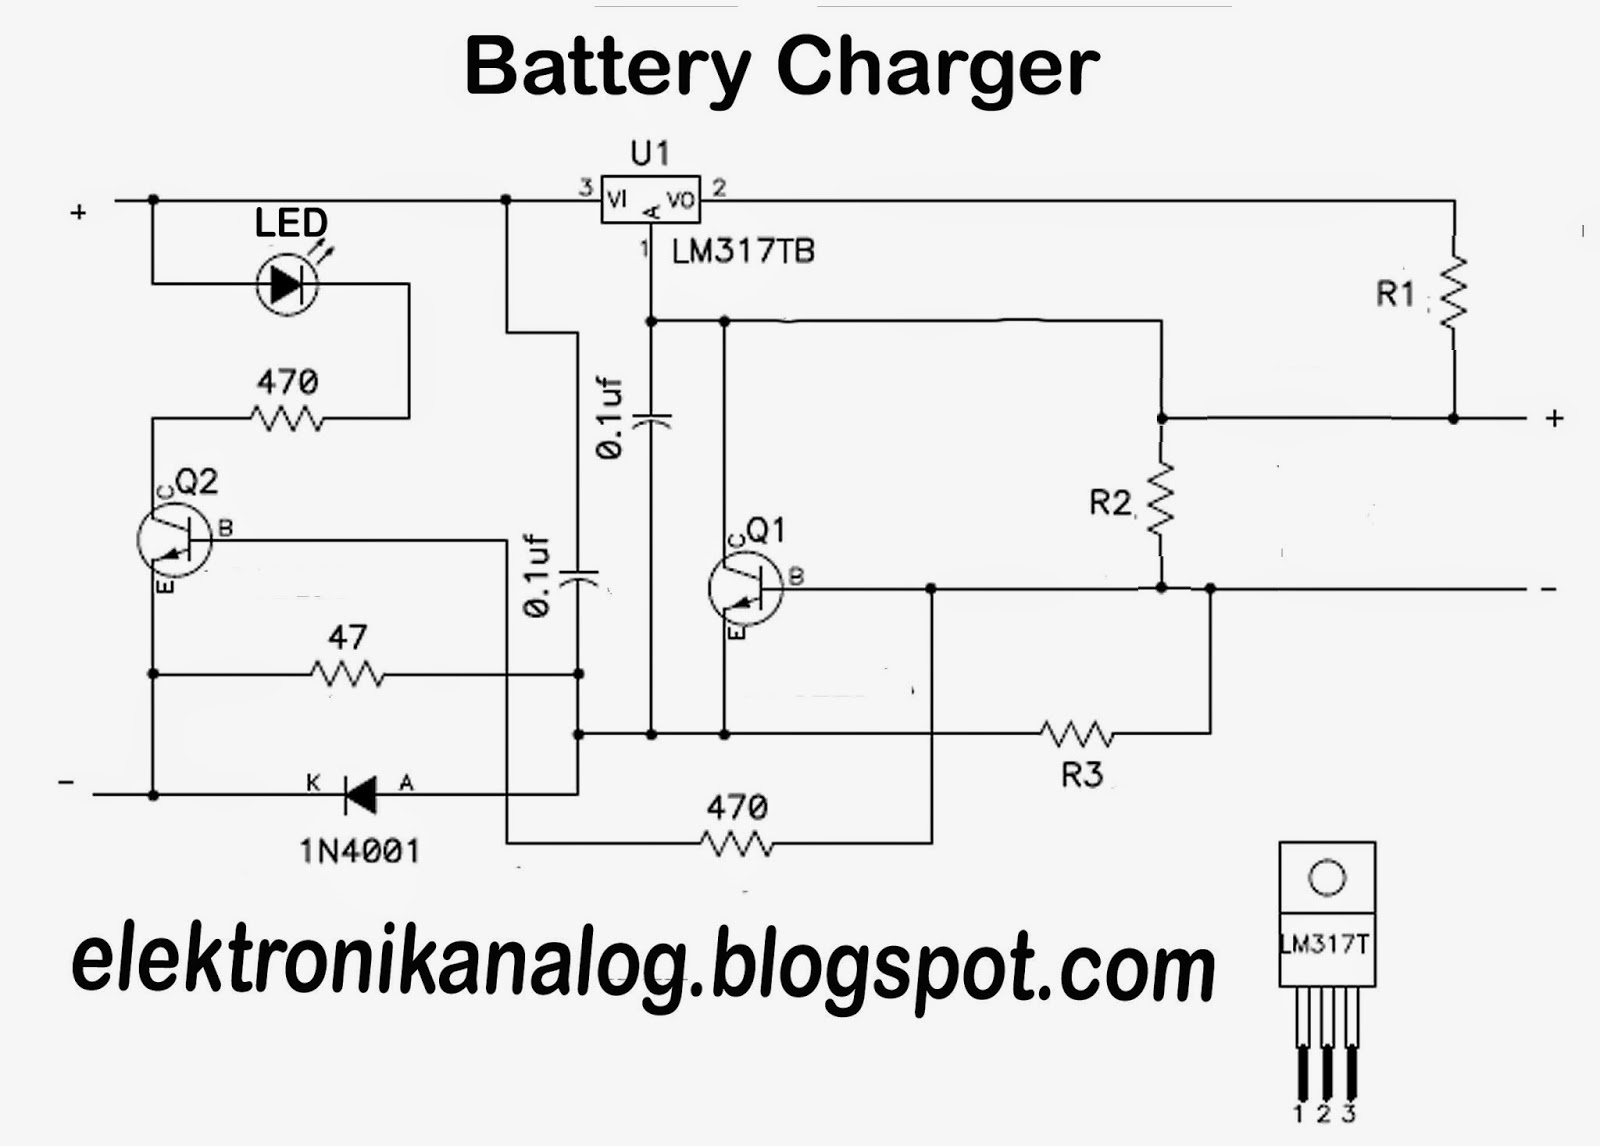 In Car Charger And Switcher Circuit For Sla Battery Diagram Download